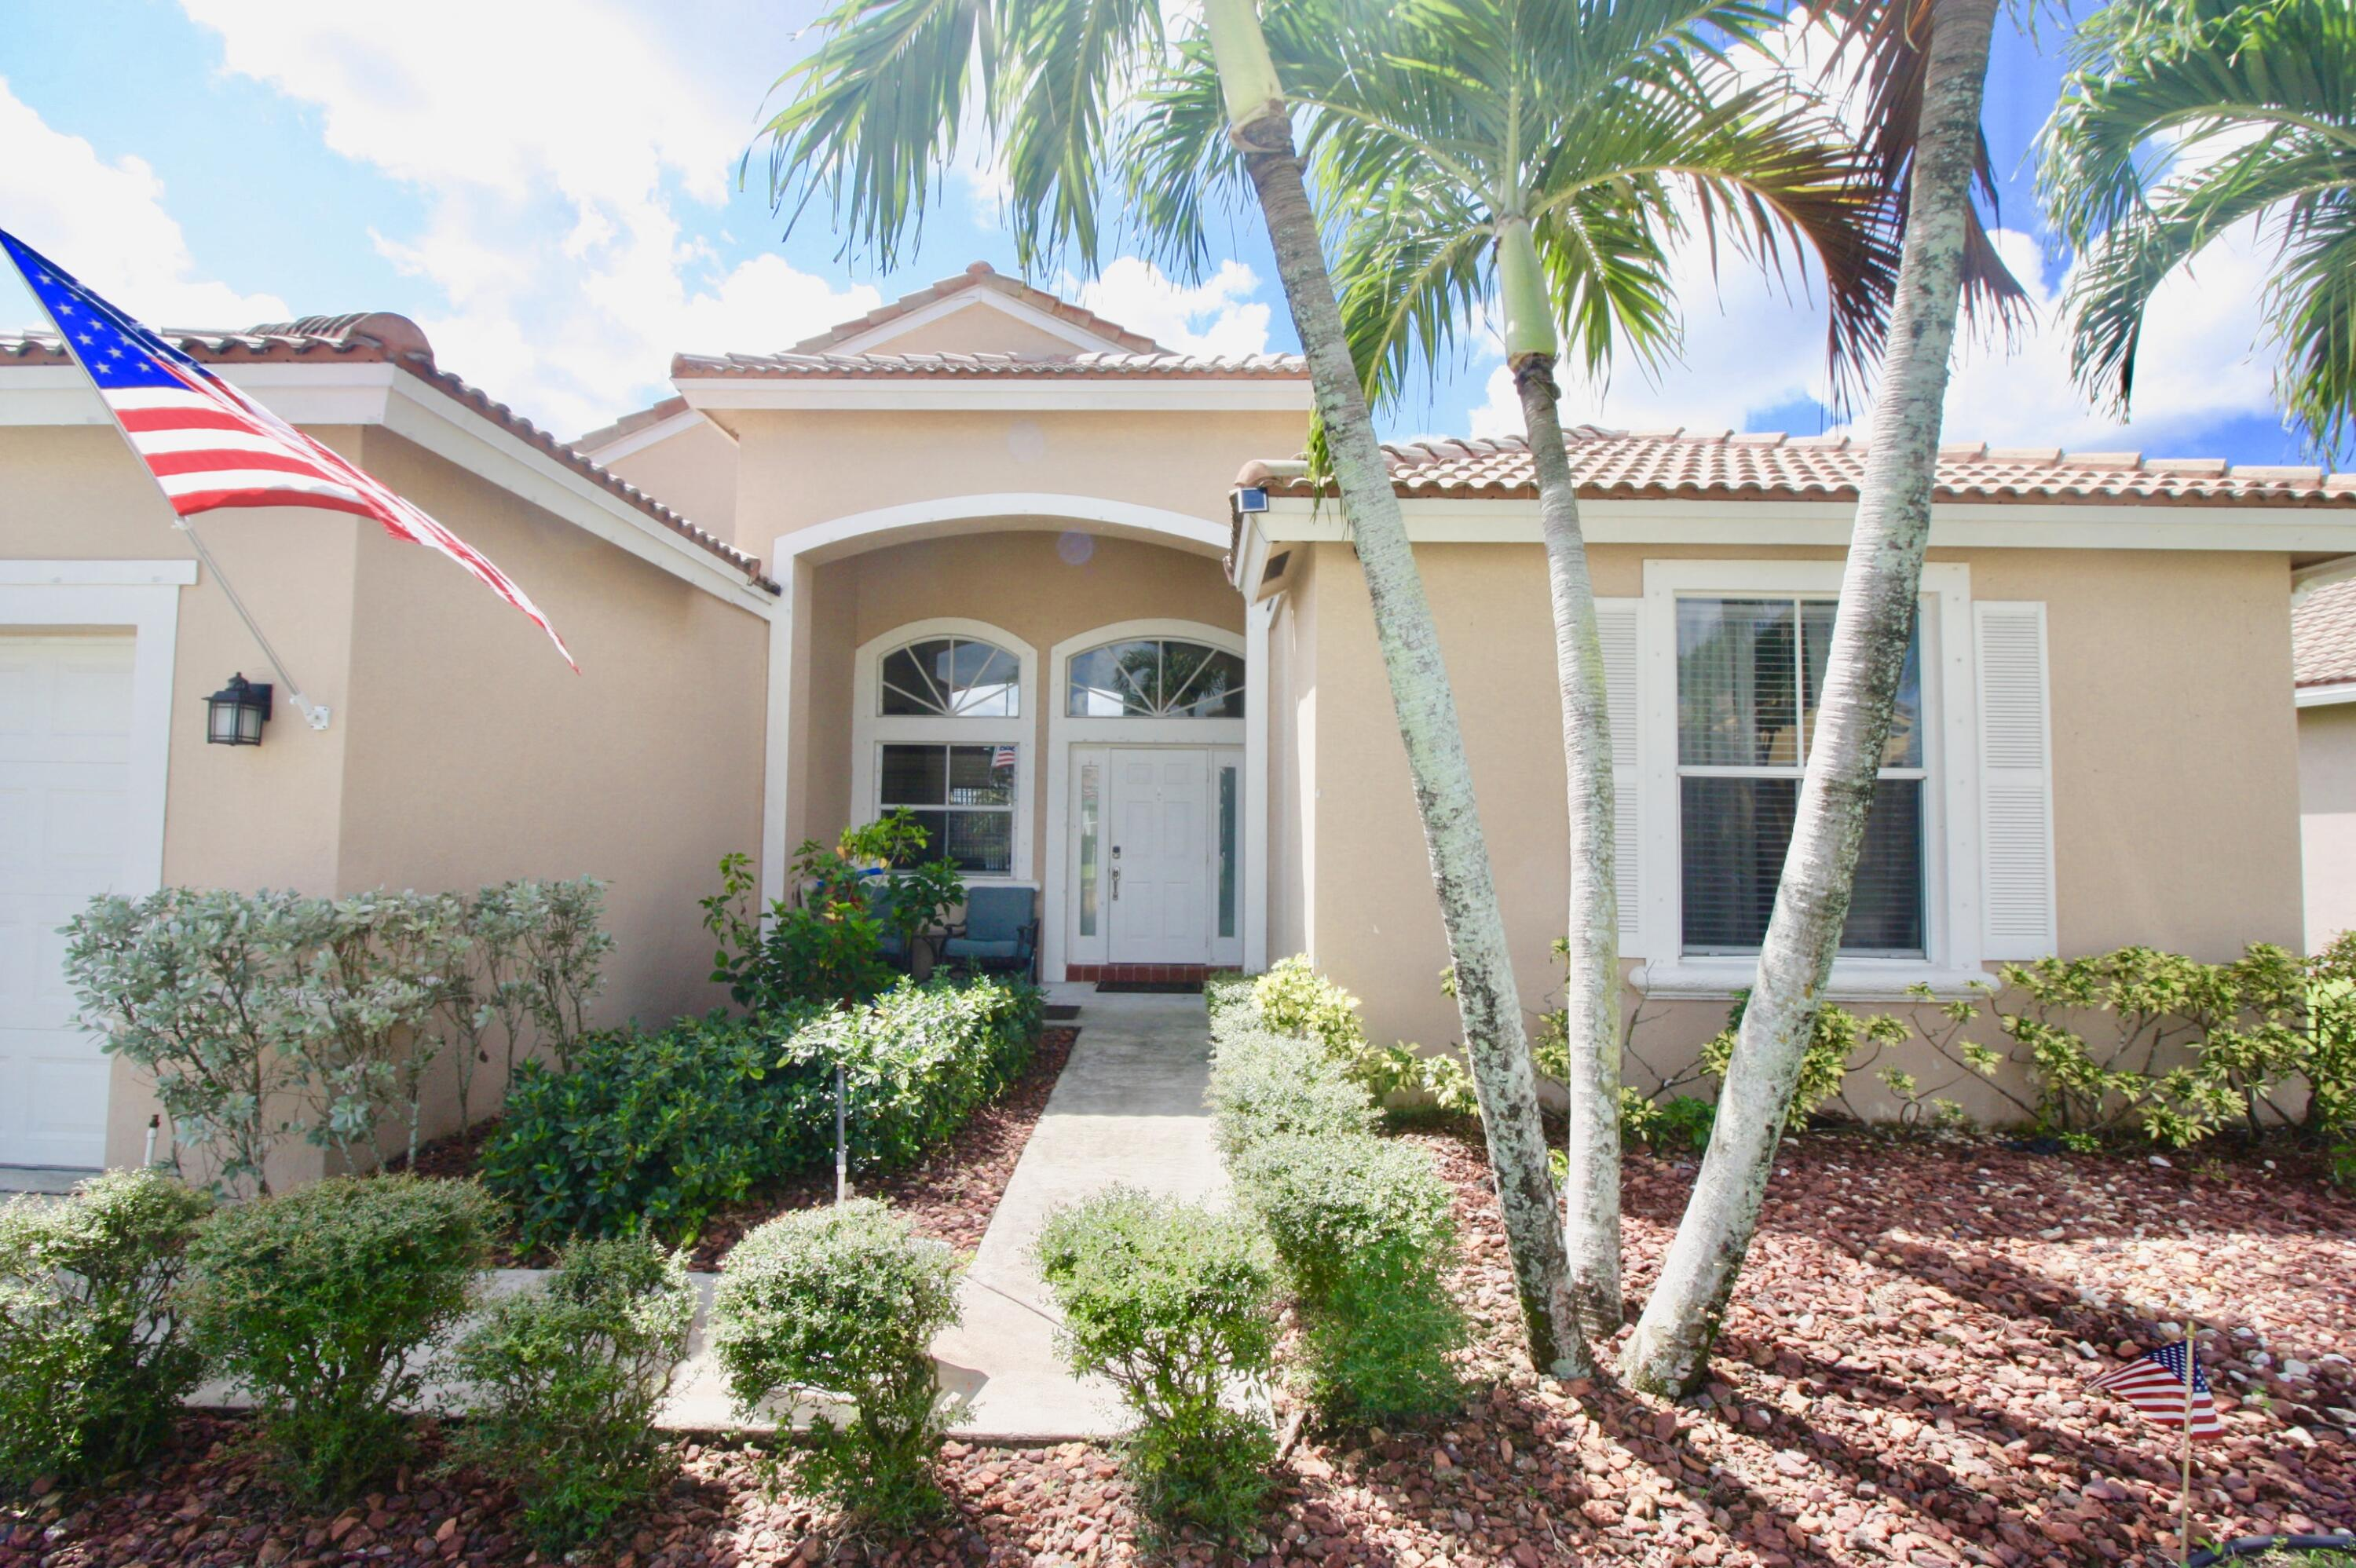 THIS HOME IS READY FOR YOUR FAMILY!